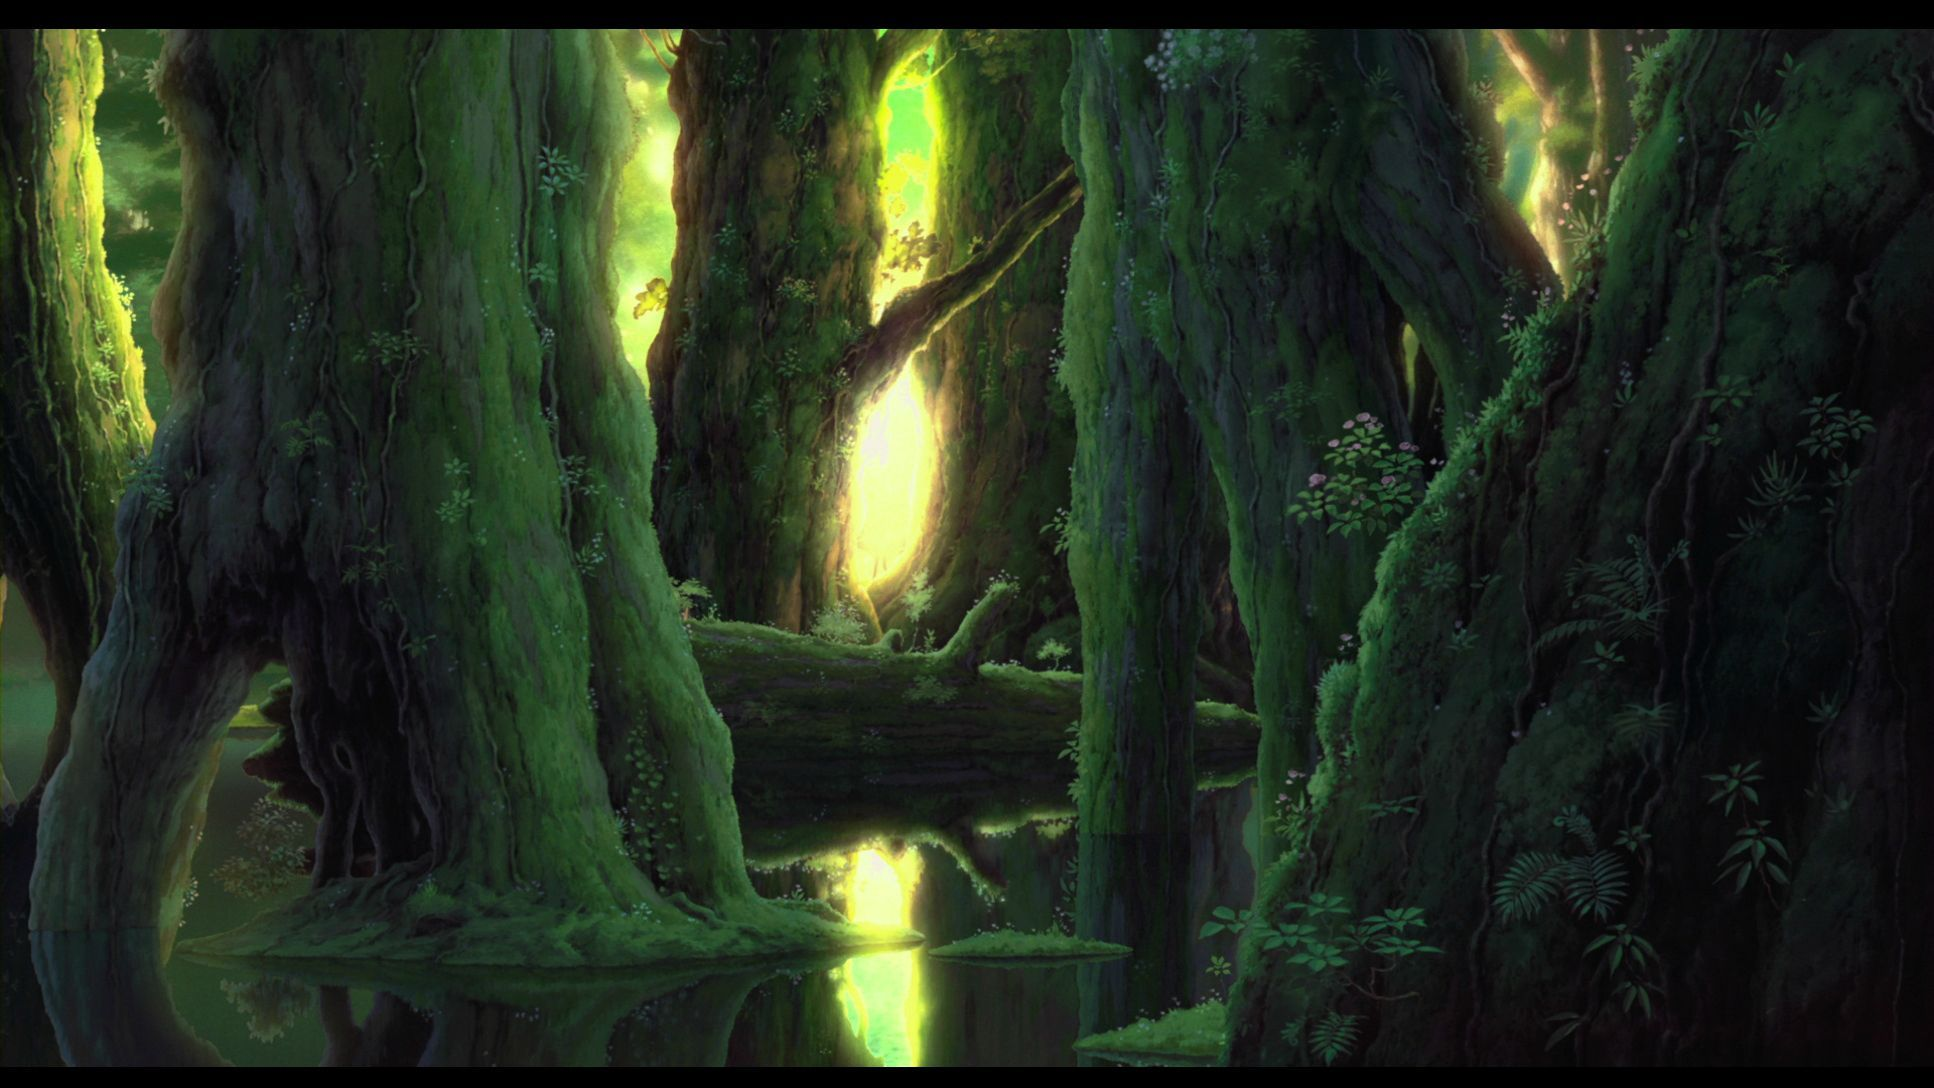 Princess Mononoke Hd Wallpaper Dump 1920x1080 More In Comments Wallpapers Princess Mononoke Anime Scenery Background Images